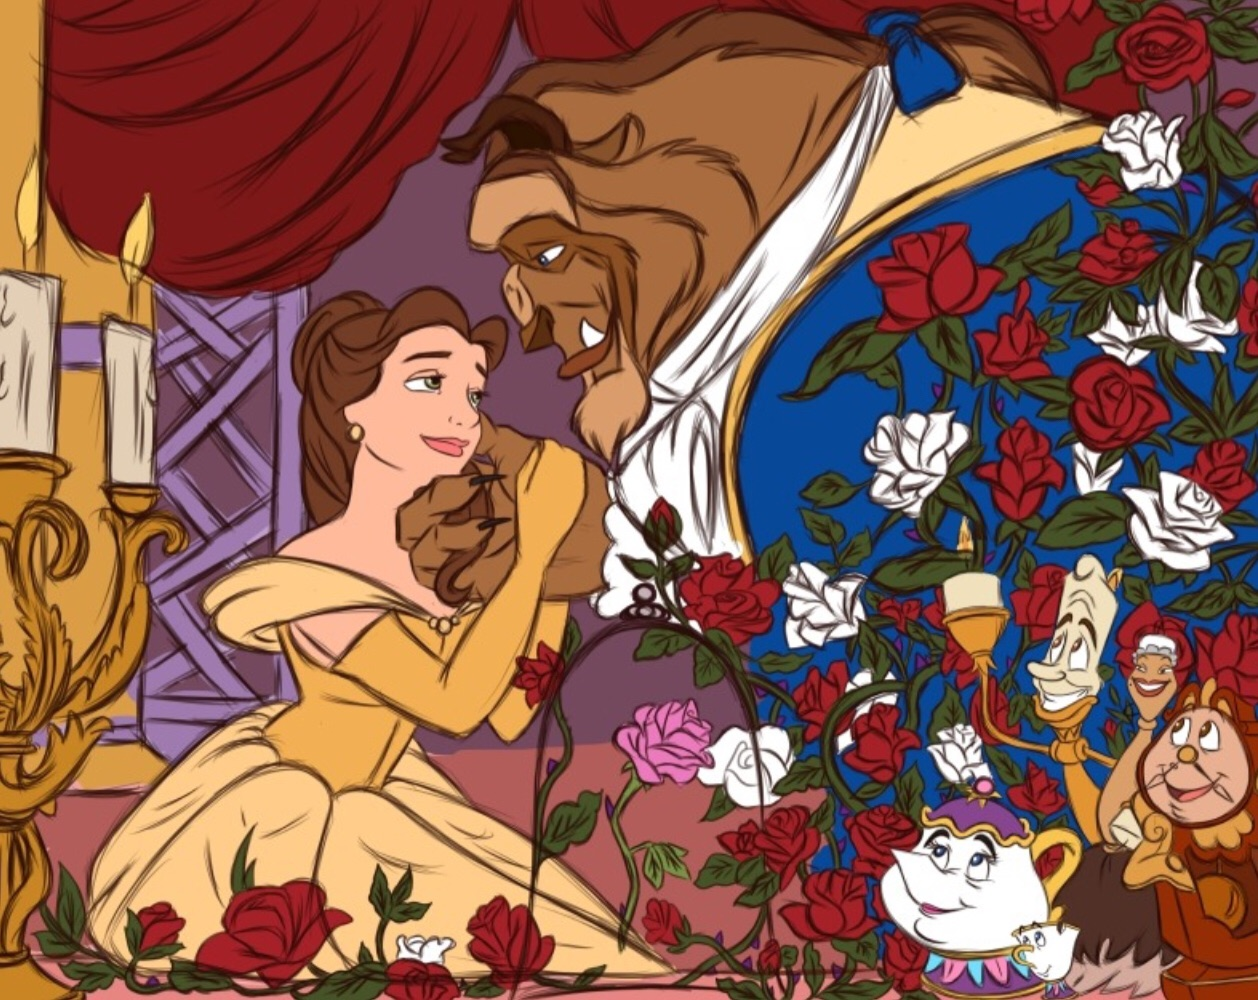 drawing, creativity, belle and beast